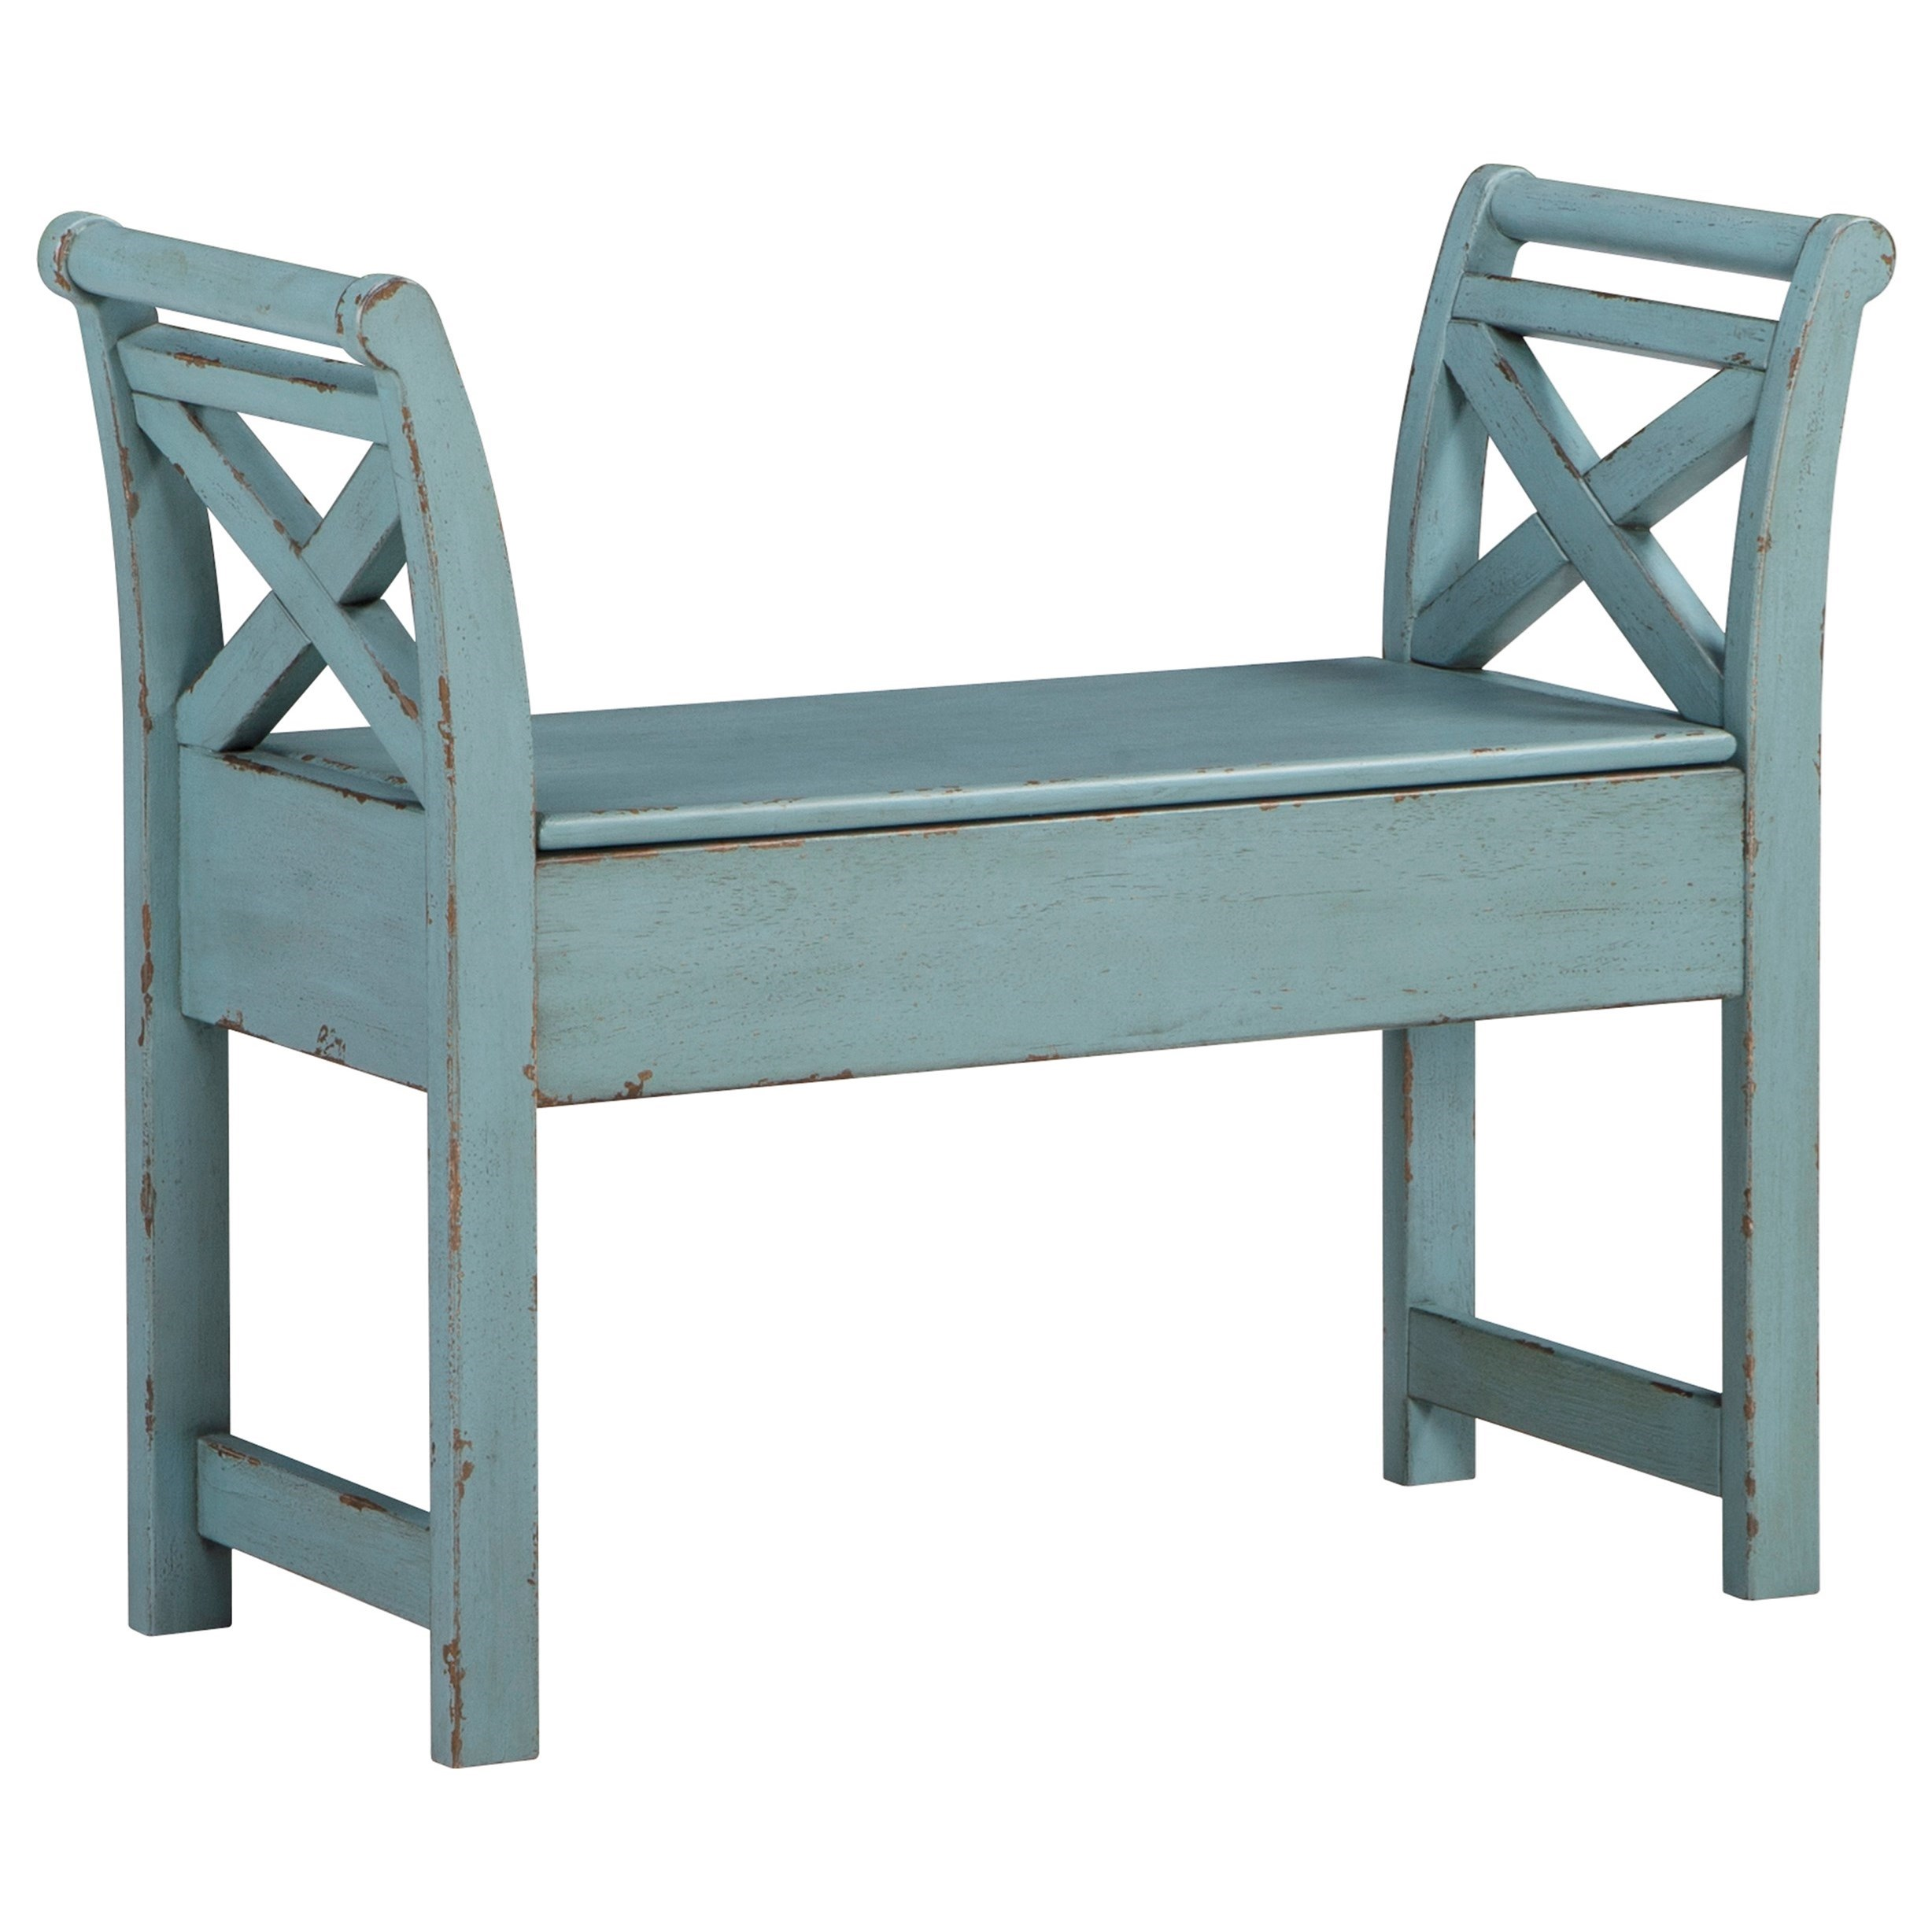 Heron Ridge Accent Bench by Ashley (Signature Design) at Johnny Janosik